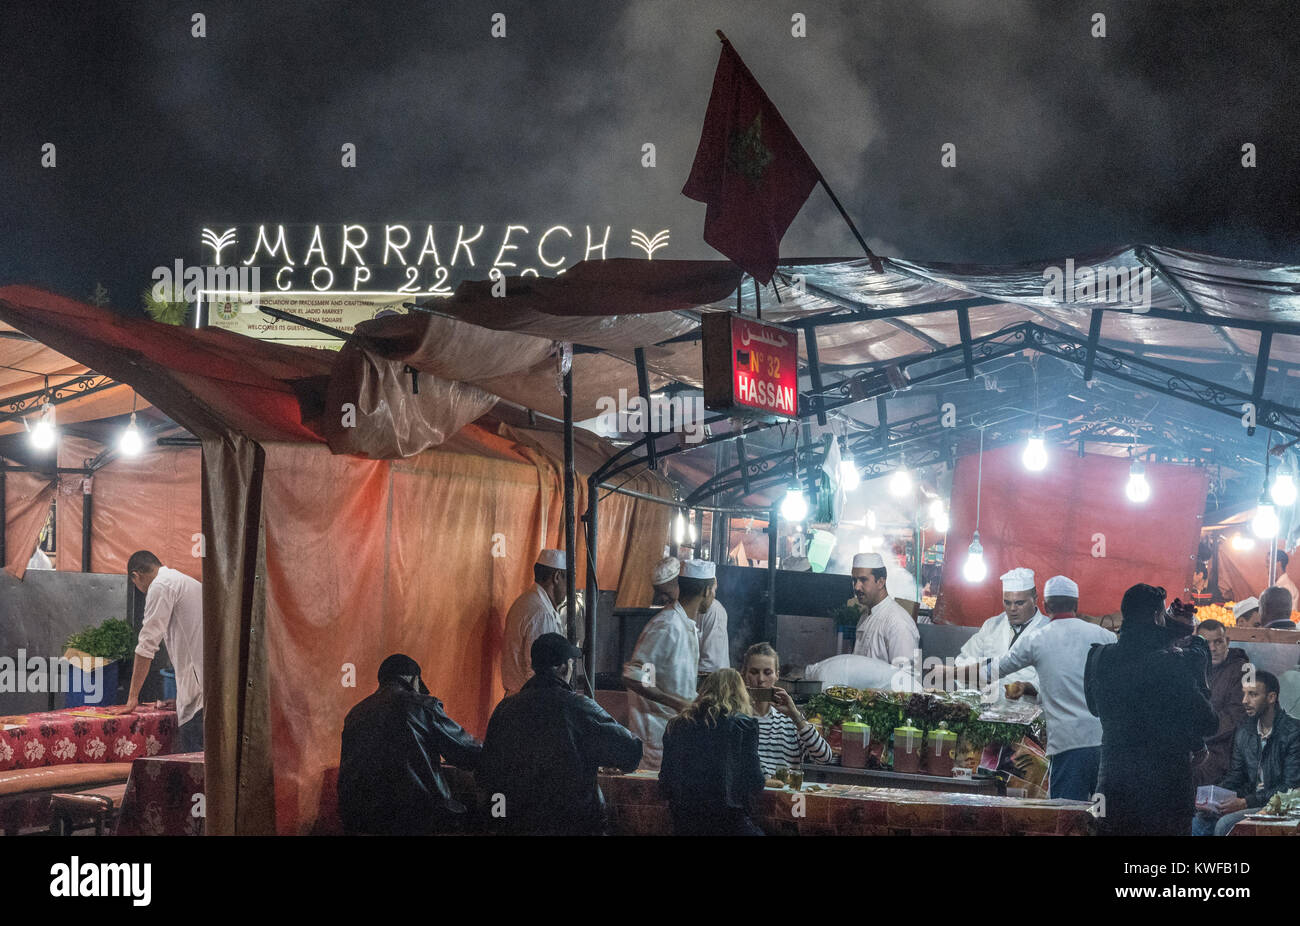 cop22, climate change conference in Jemaa el Fna, the Square with outdooor restaurants - Stock Image